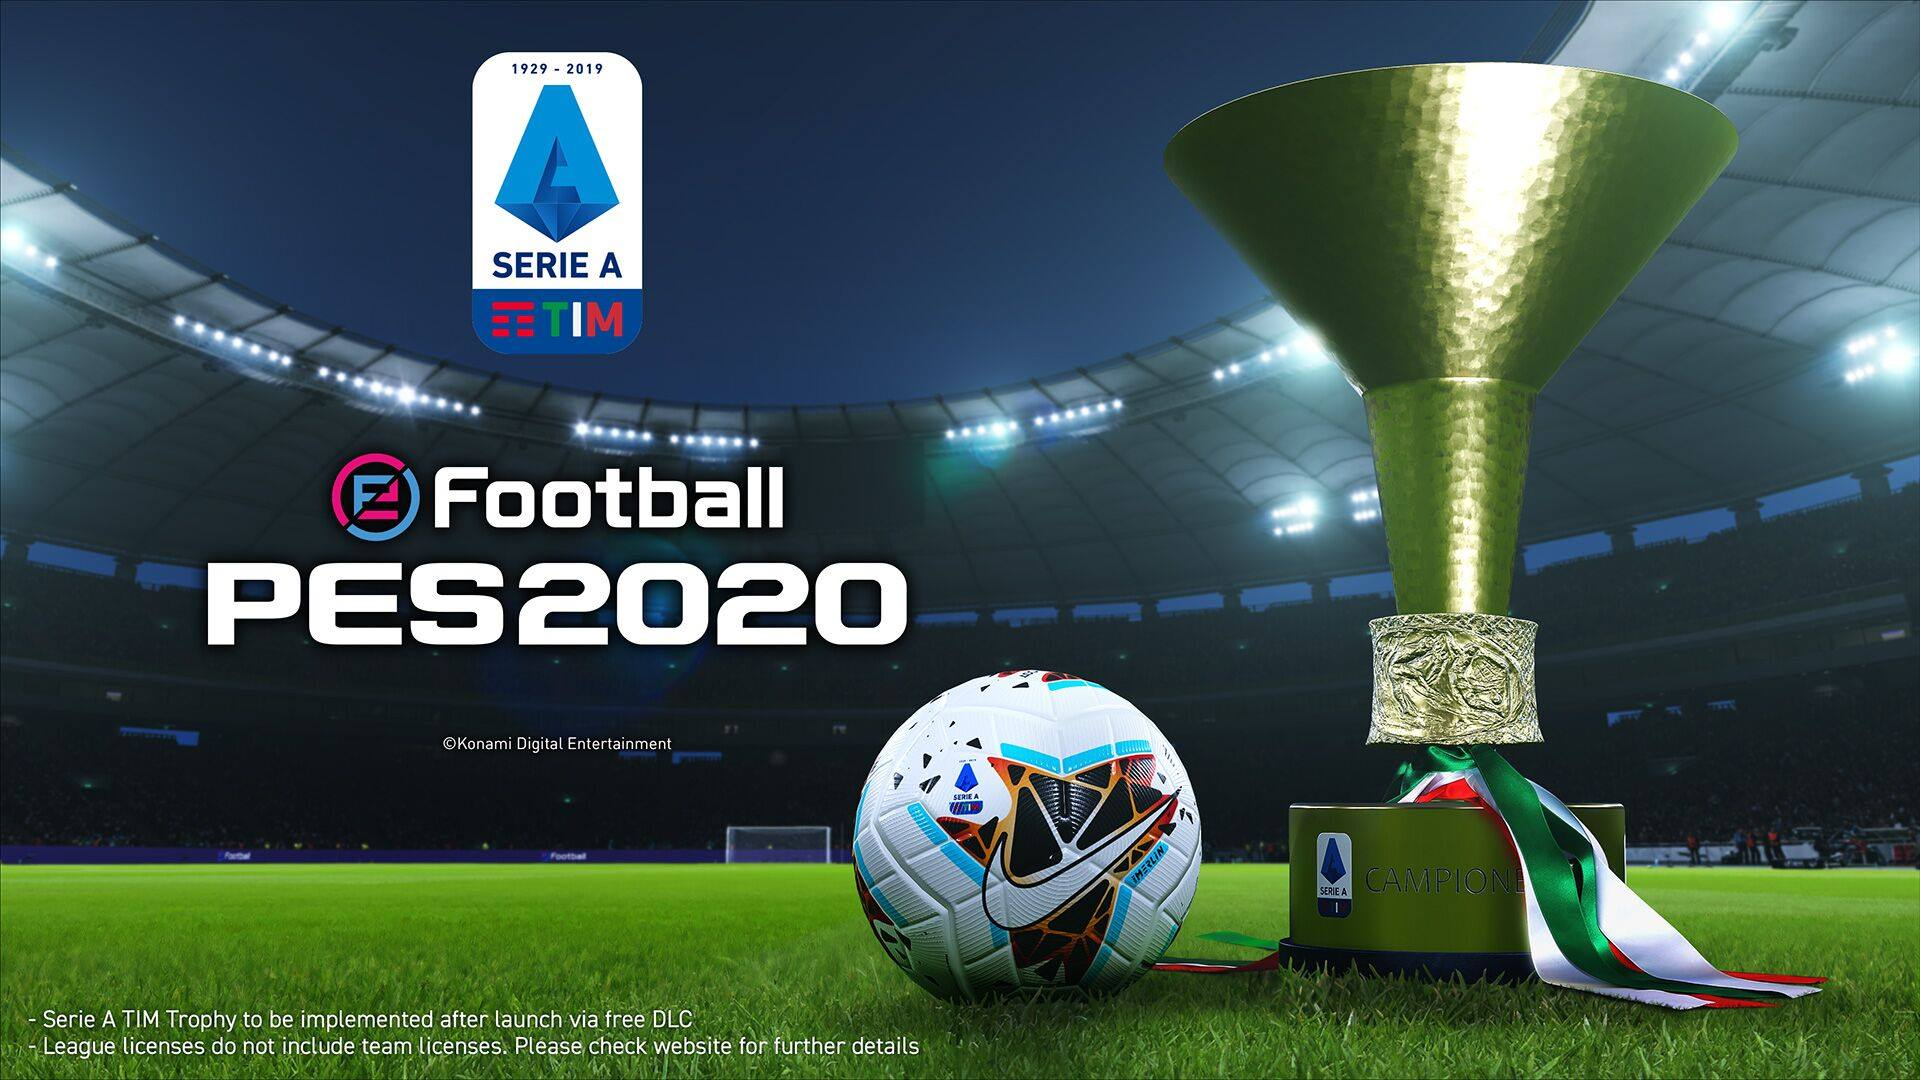 Serie A PES 2020